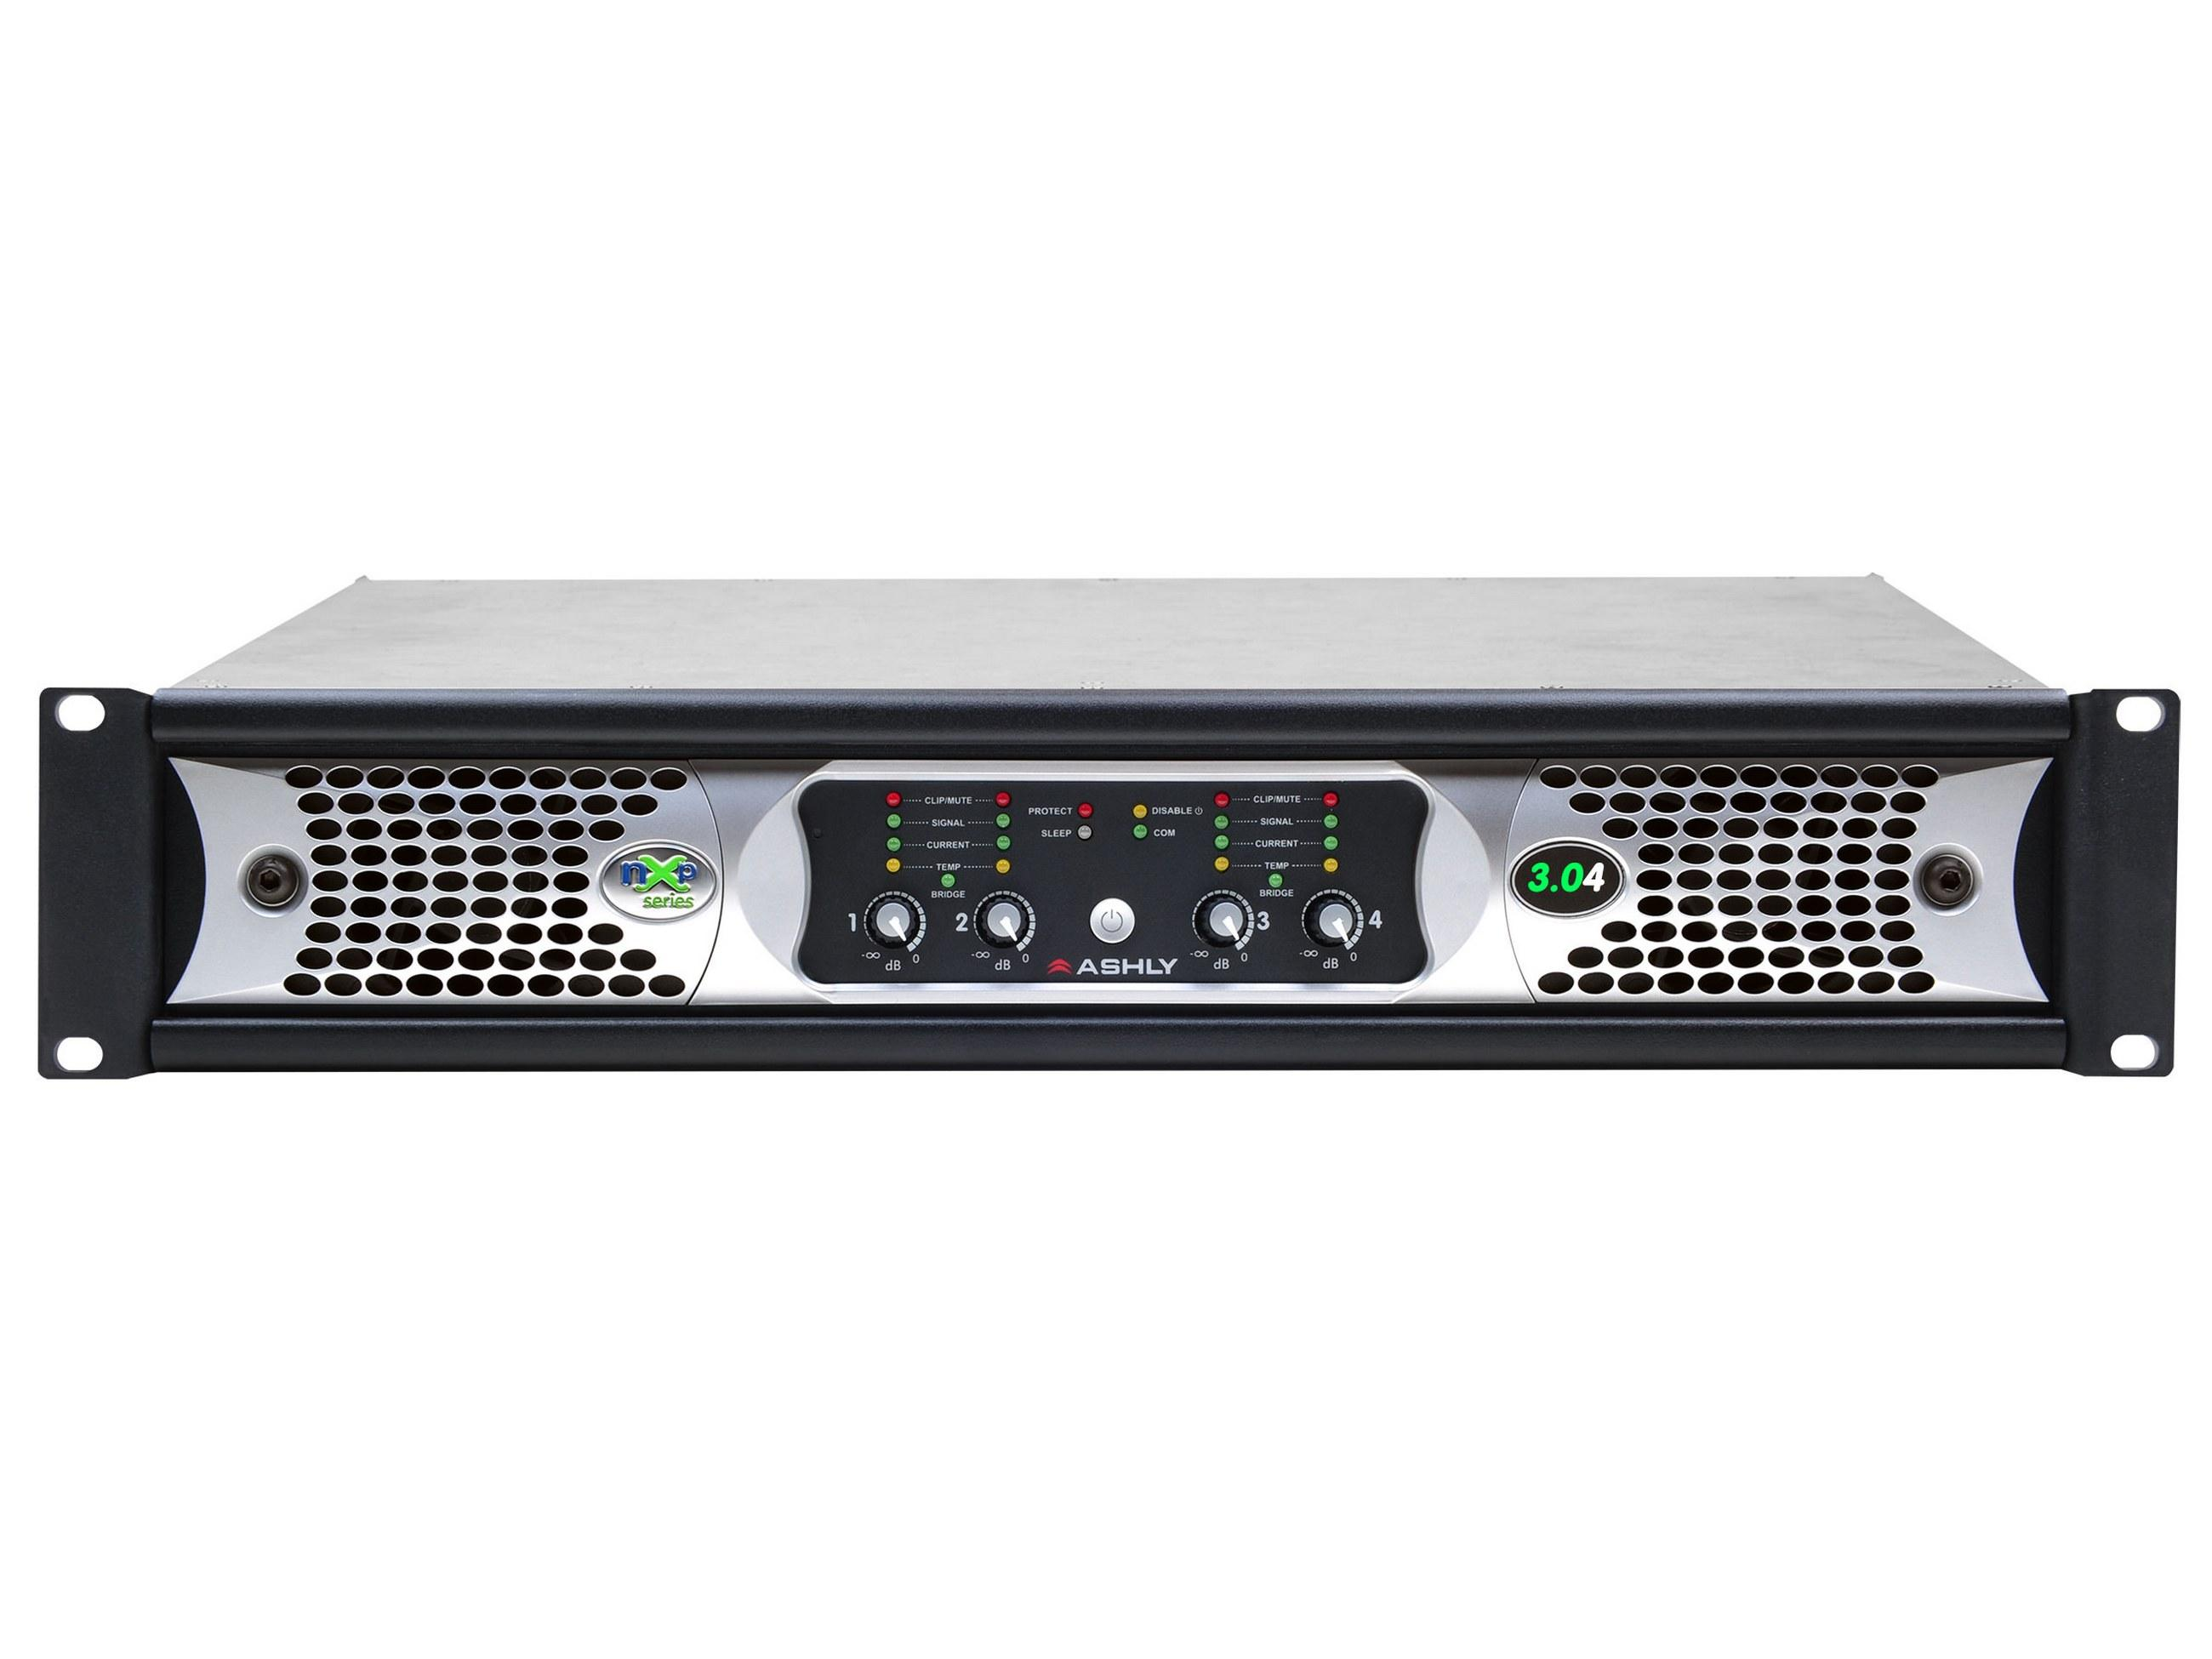 Ashly nXp3.04 Network Power Amplifier 4 x 3000 Watts/2 Ohms with Protea DSP